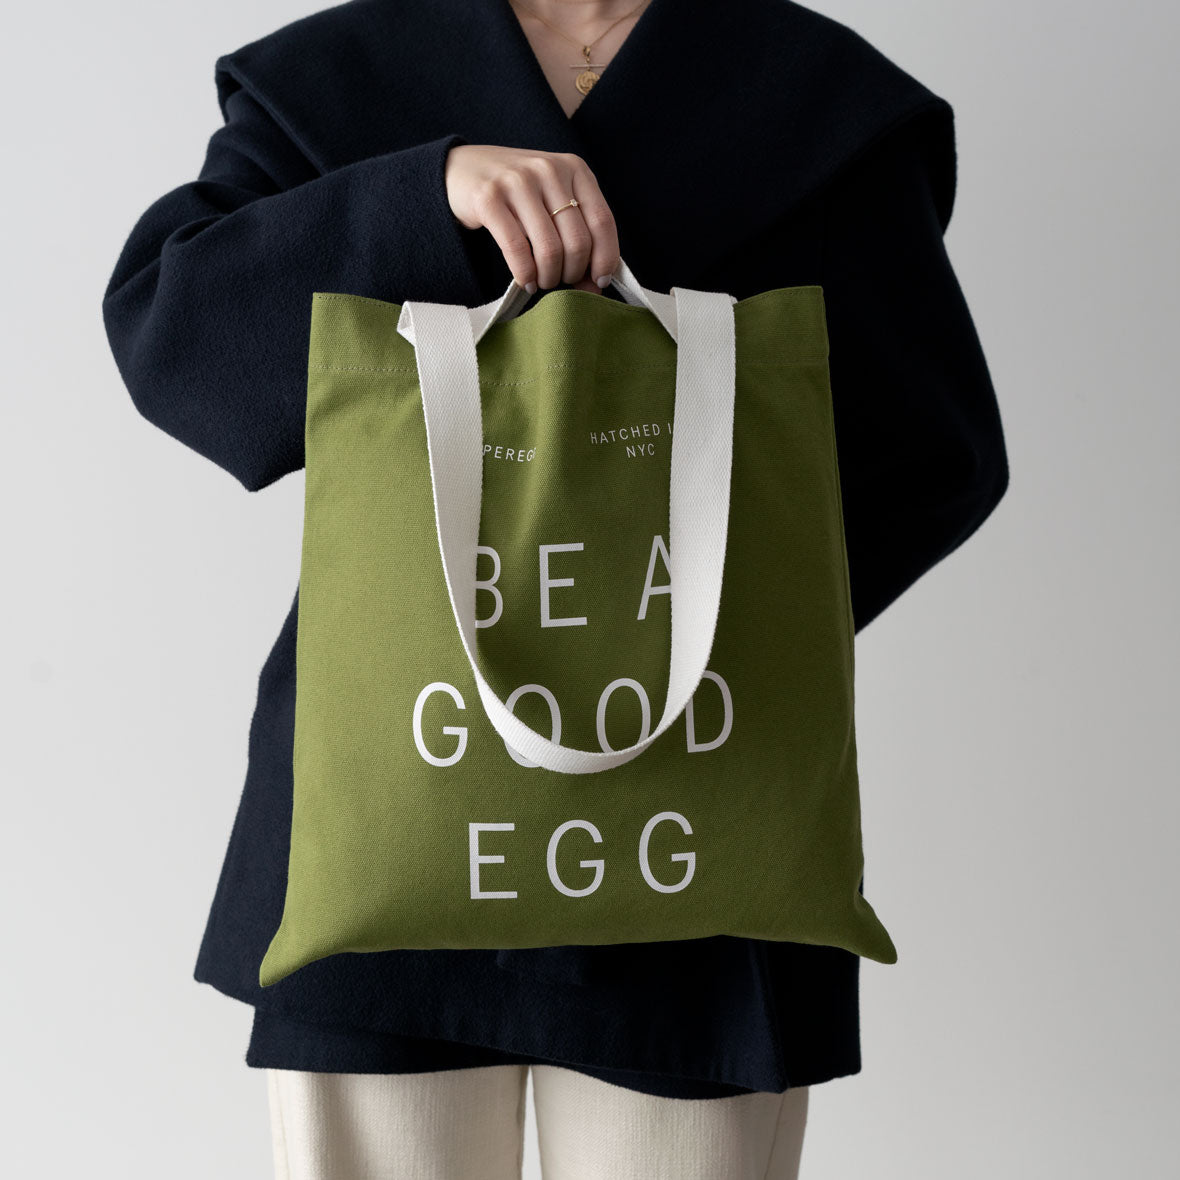 Superegg clean beauty vegan skincare Tote Be a good egg